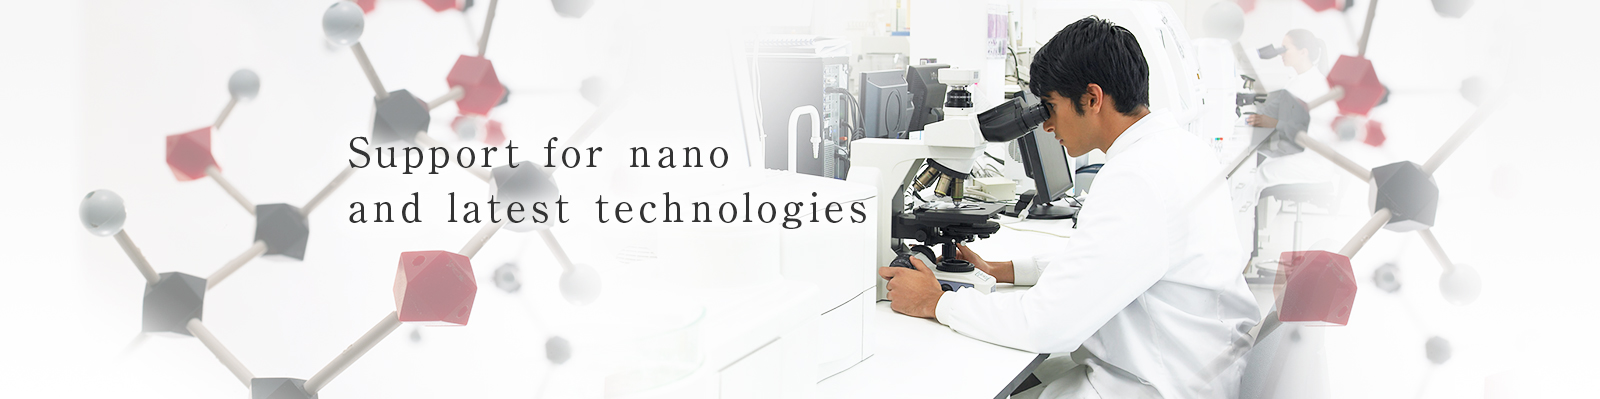 Support for nano and latest technologies